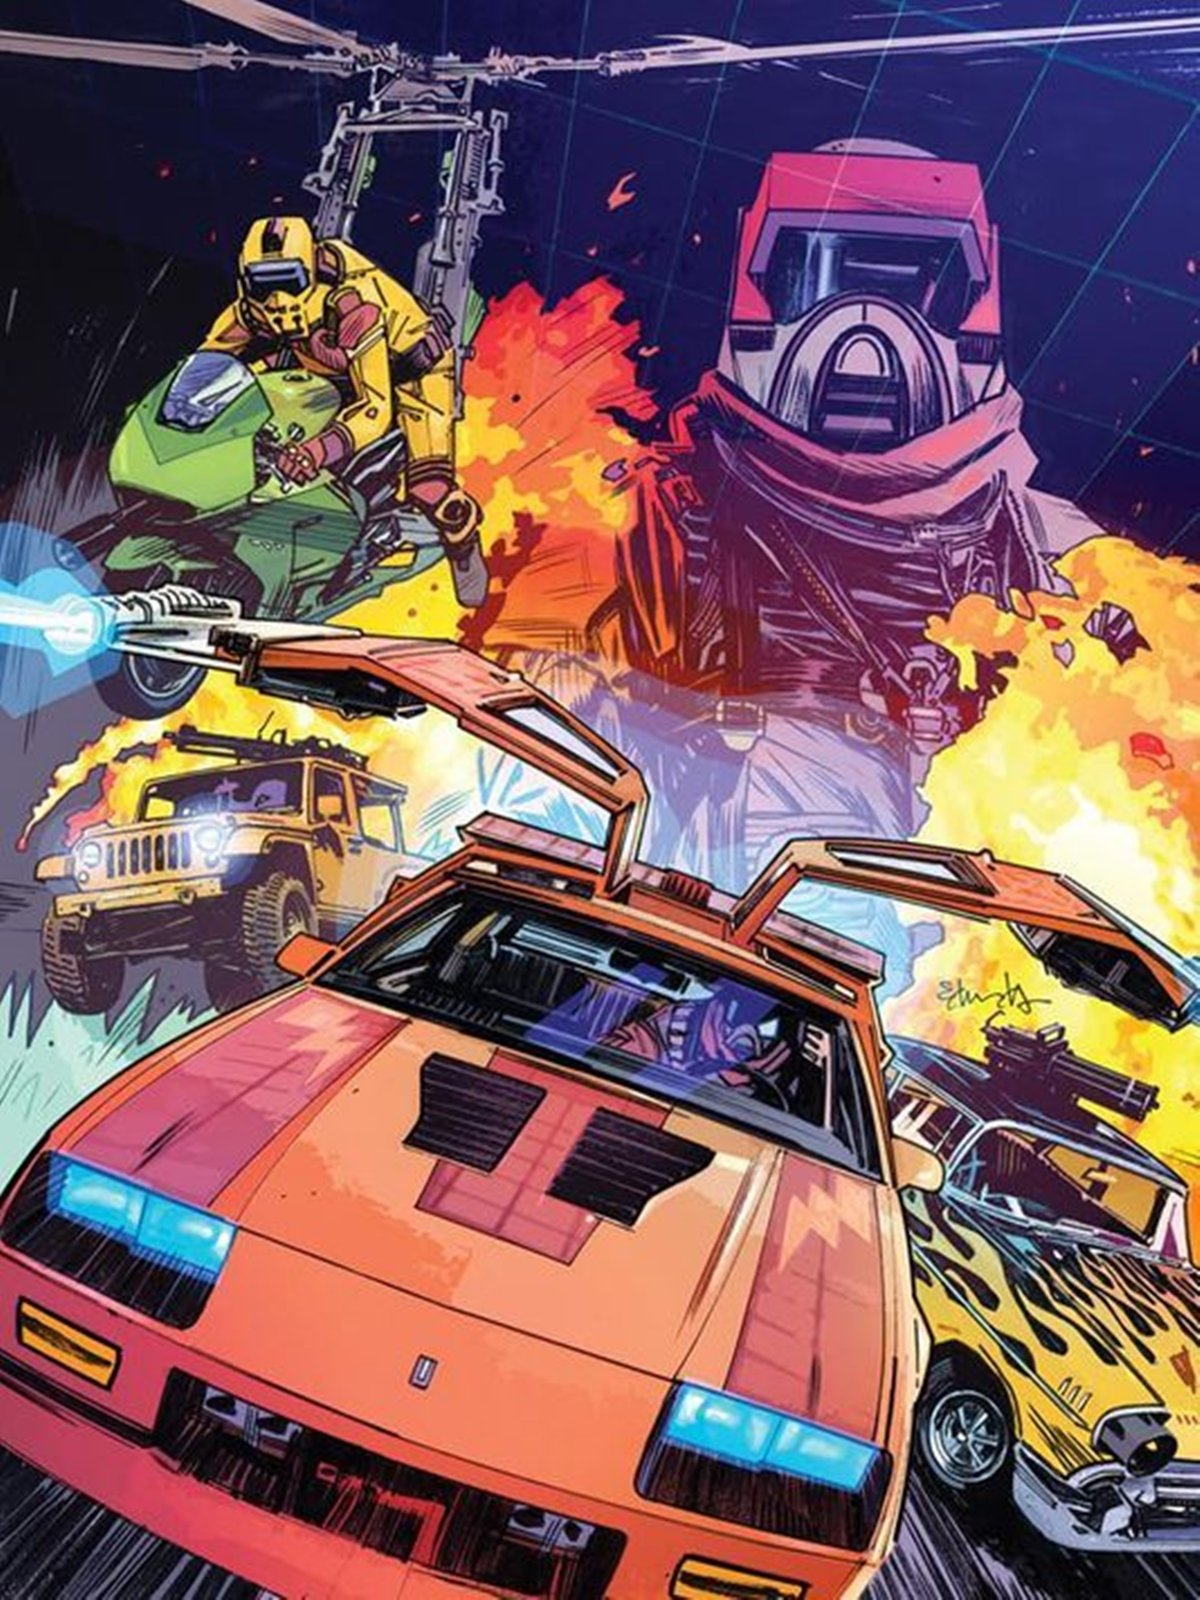 5 22 This Is The News M.A.S.K. Fans Have Been Waiting 30 Years For!